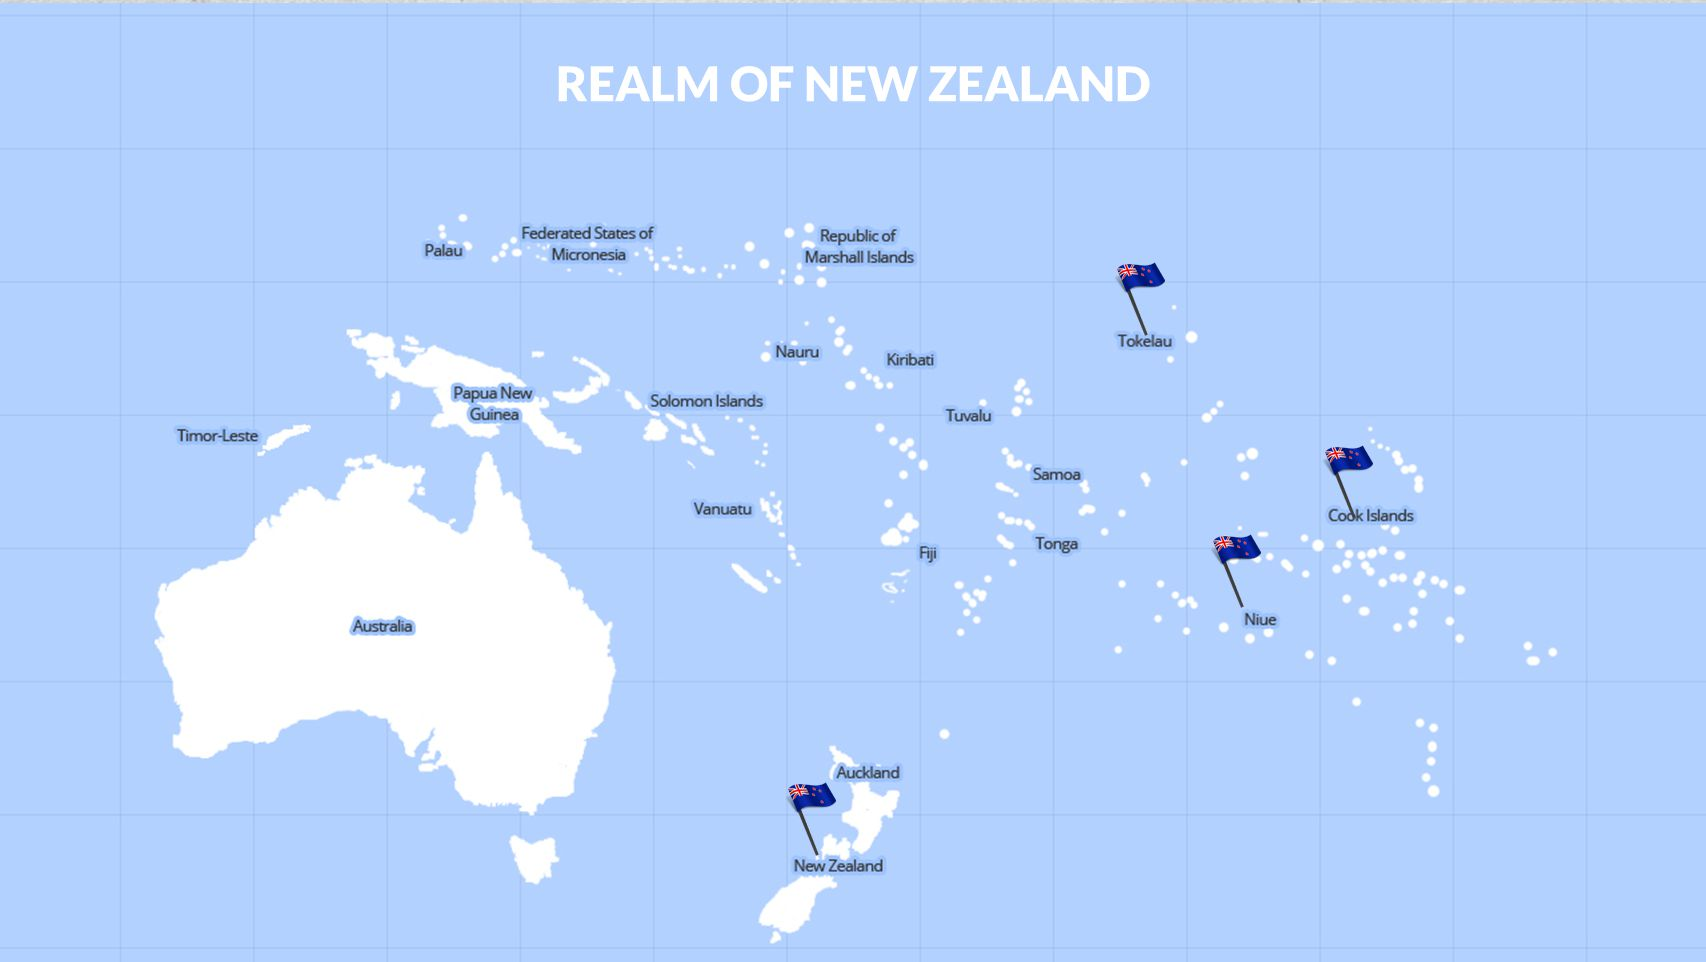 BANK DISTRIBUTION IN THE PACIFIC